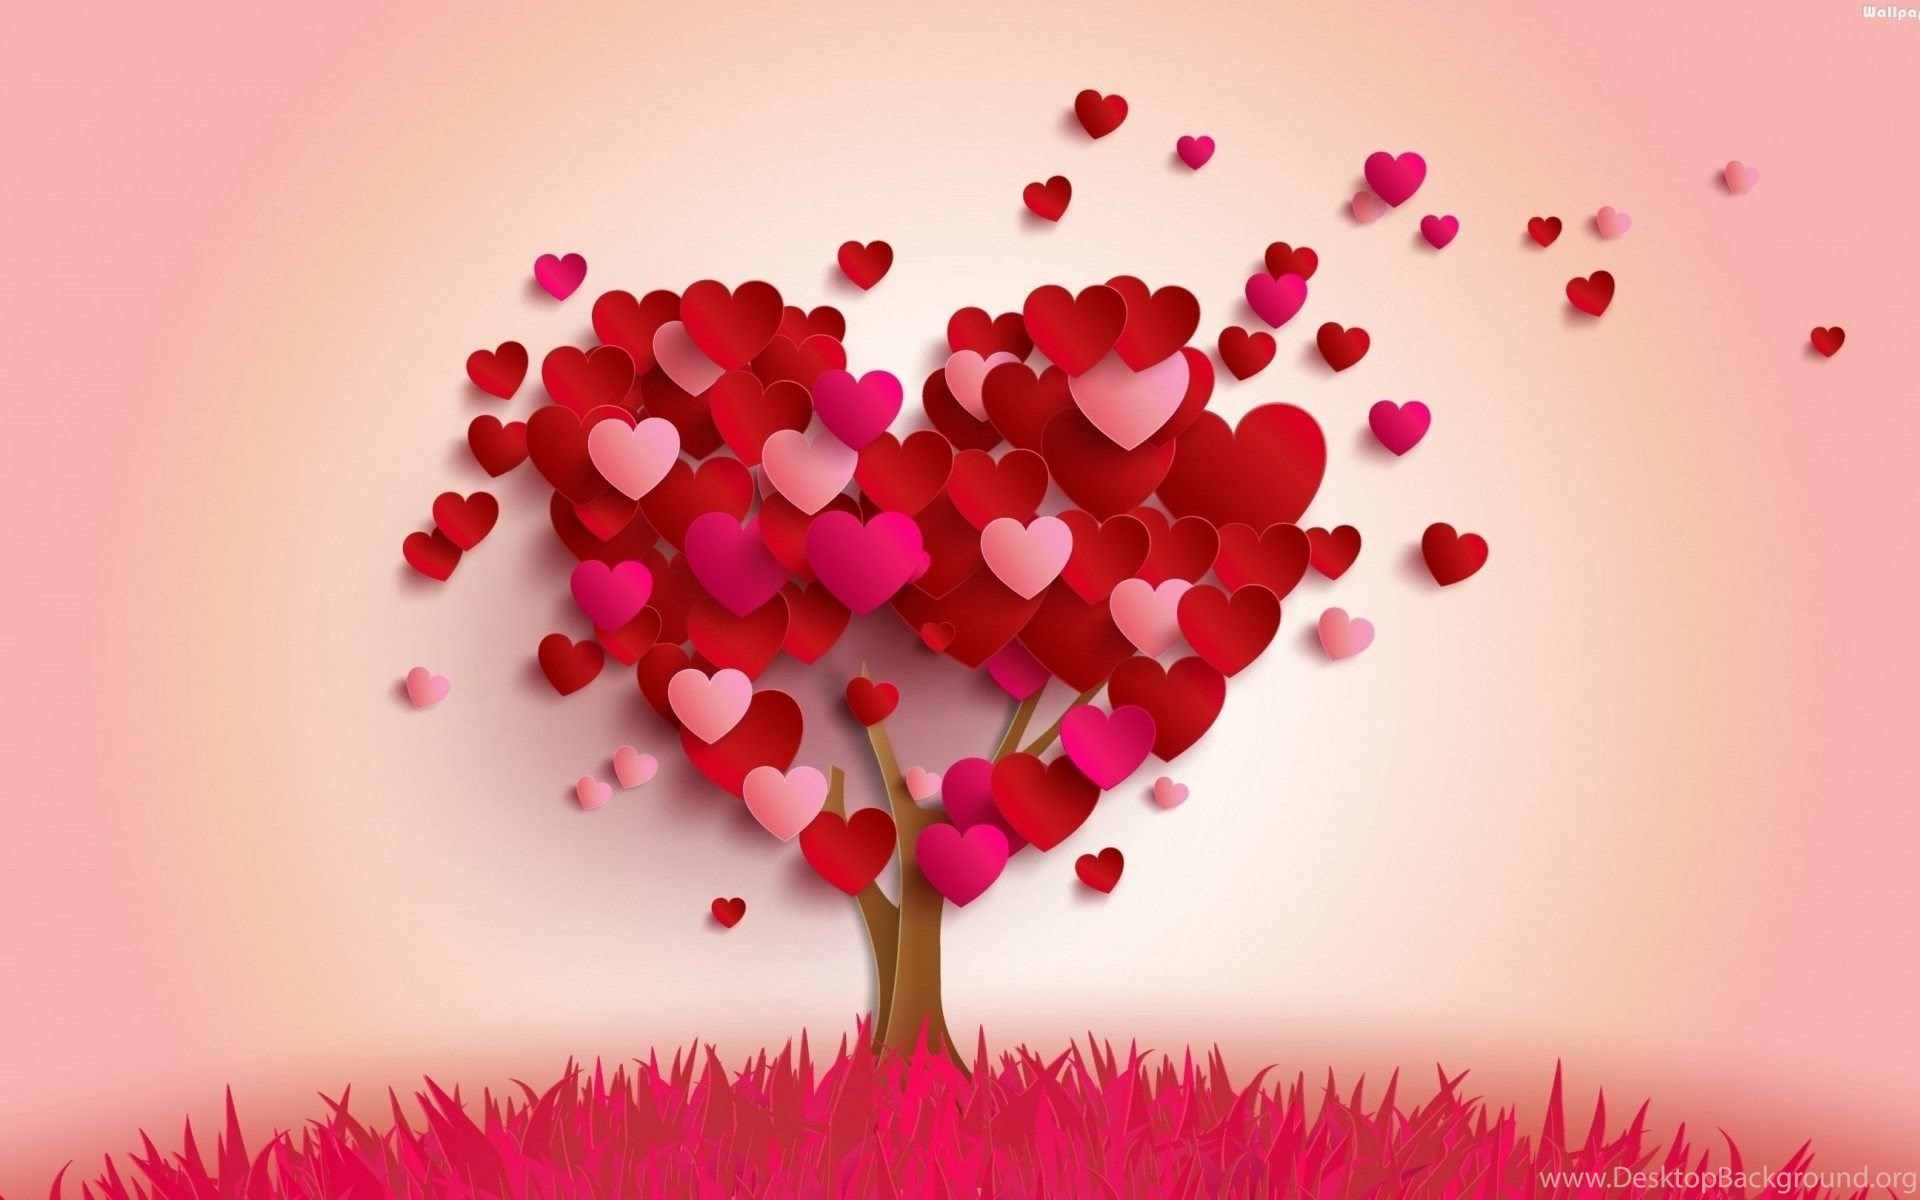 Love cute Romantic Wallpaper : cute wallpapers of love Wallpaper Images